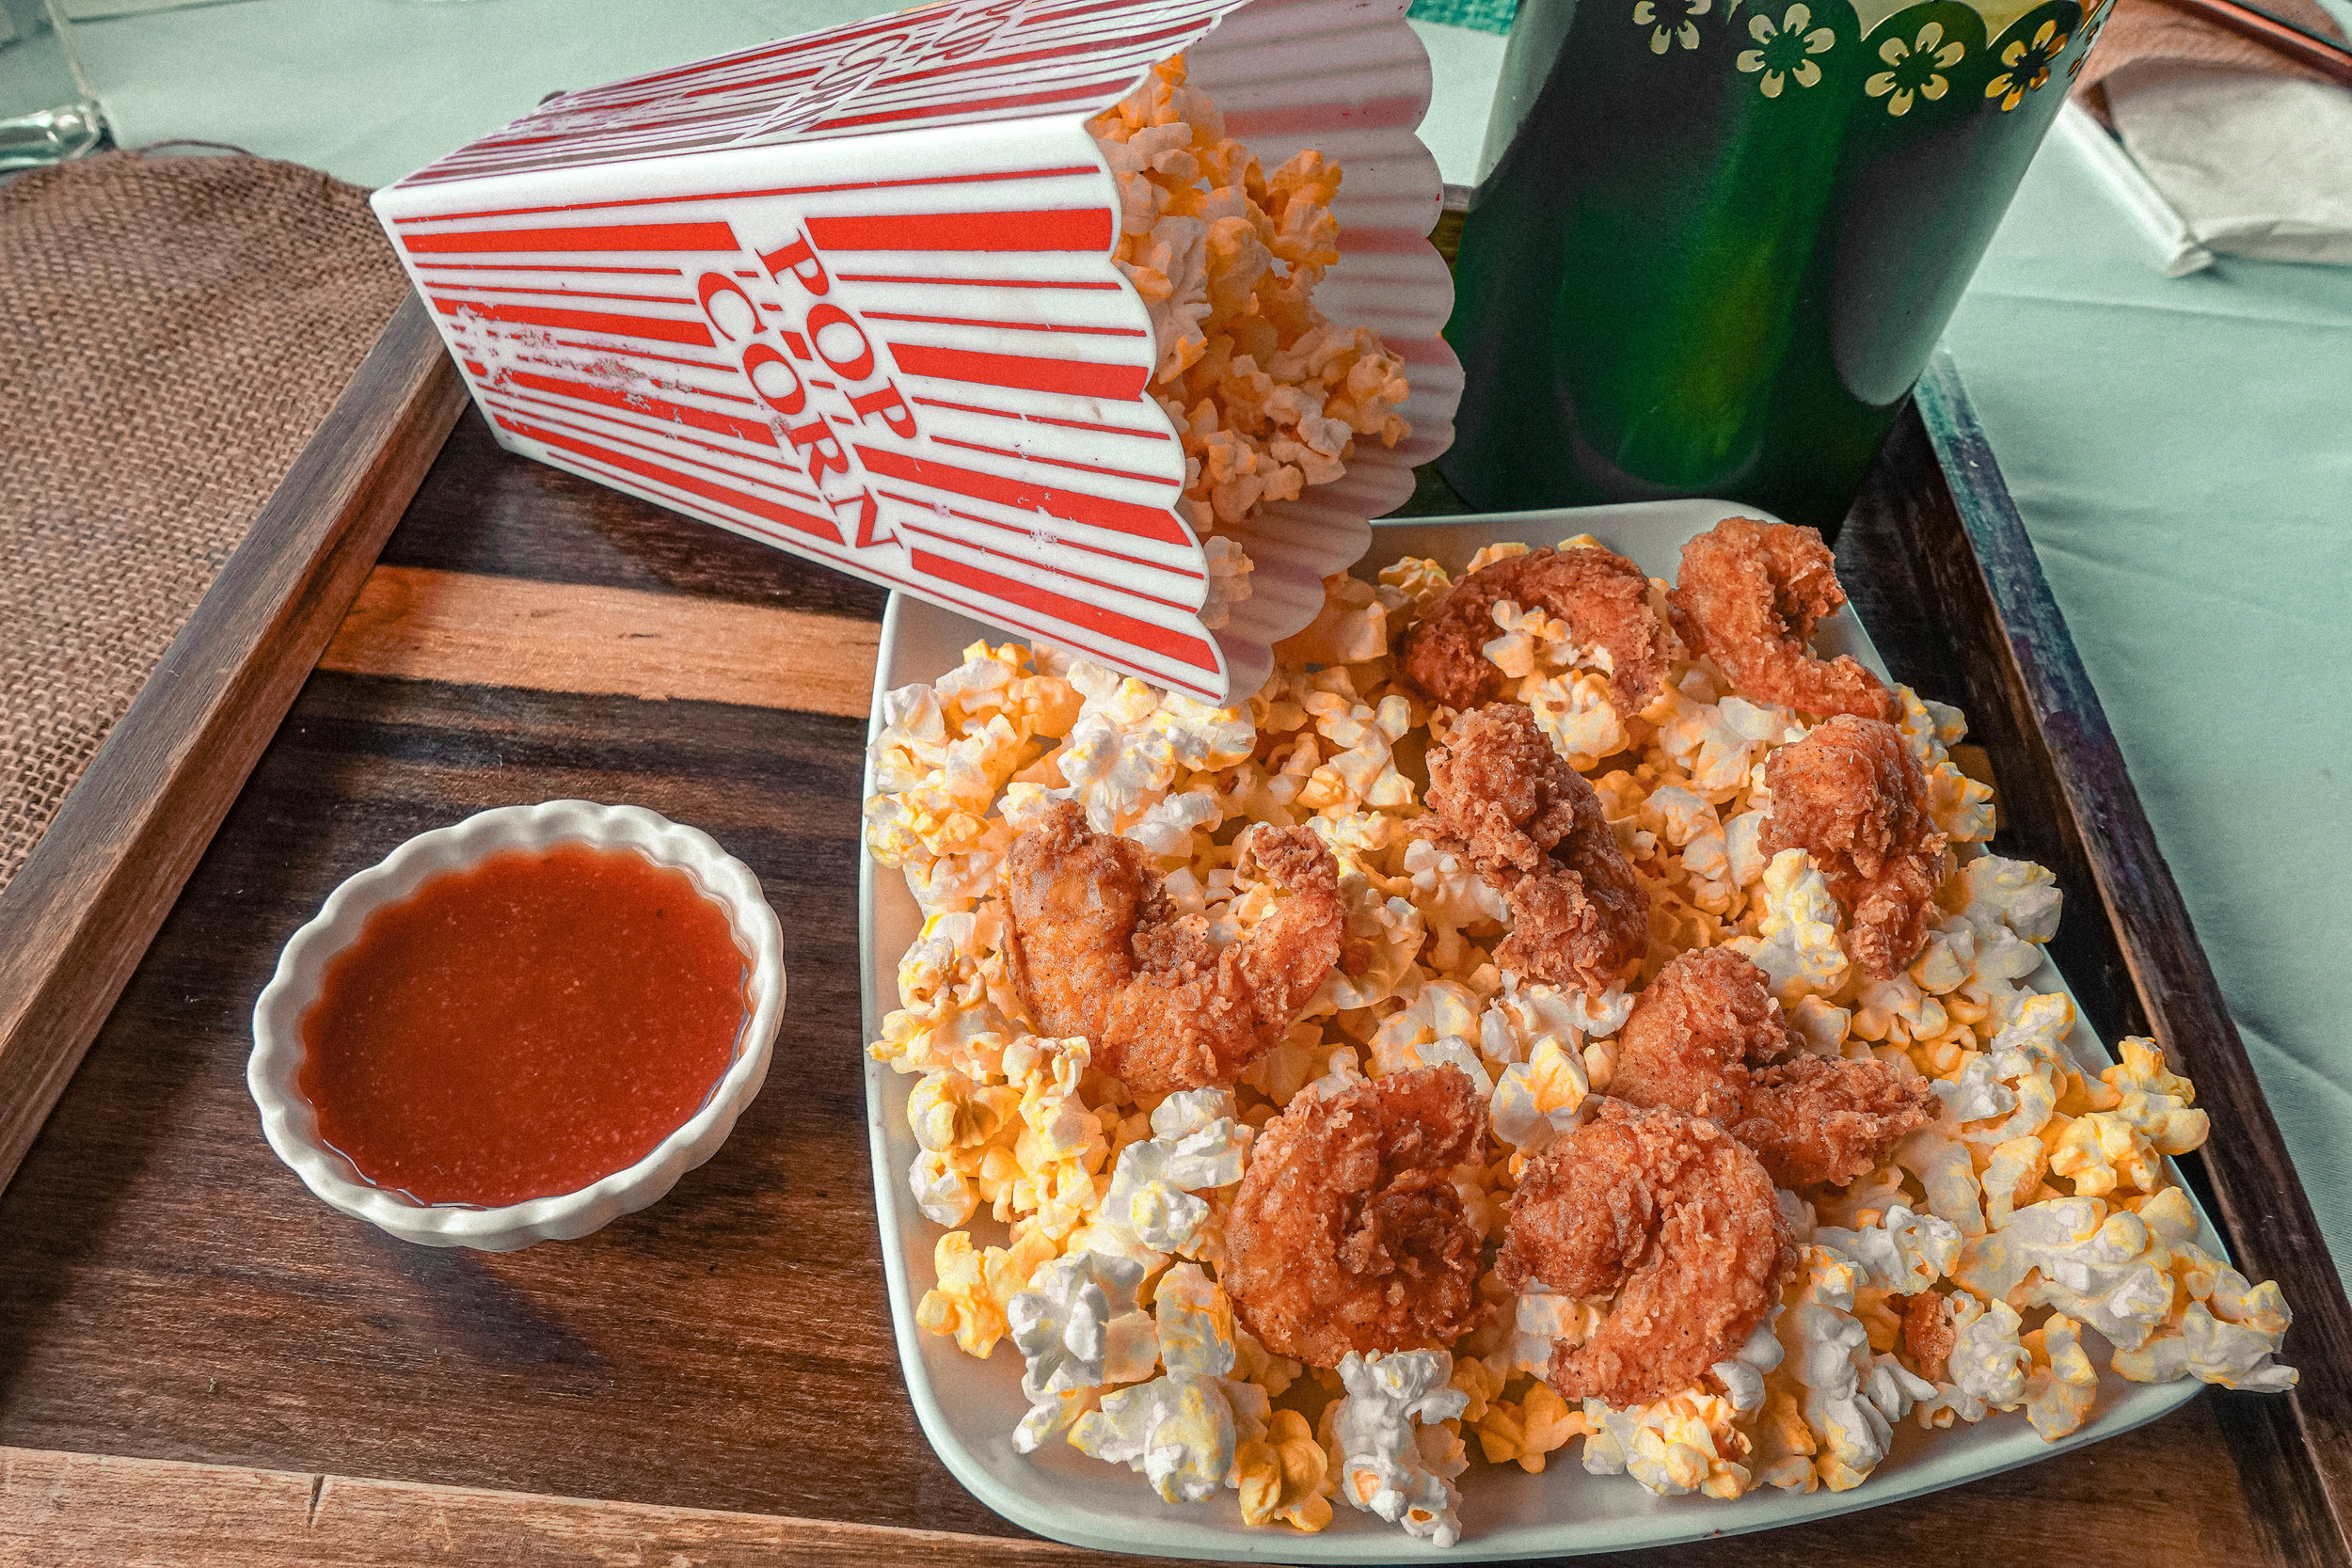 POP CORN SHRIMP - on a bed of popcorn served with homemade barbecue sauce.